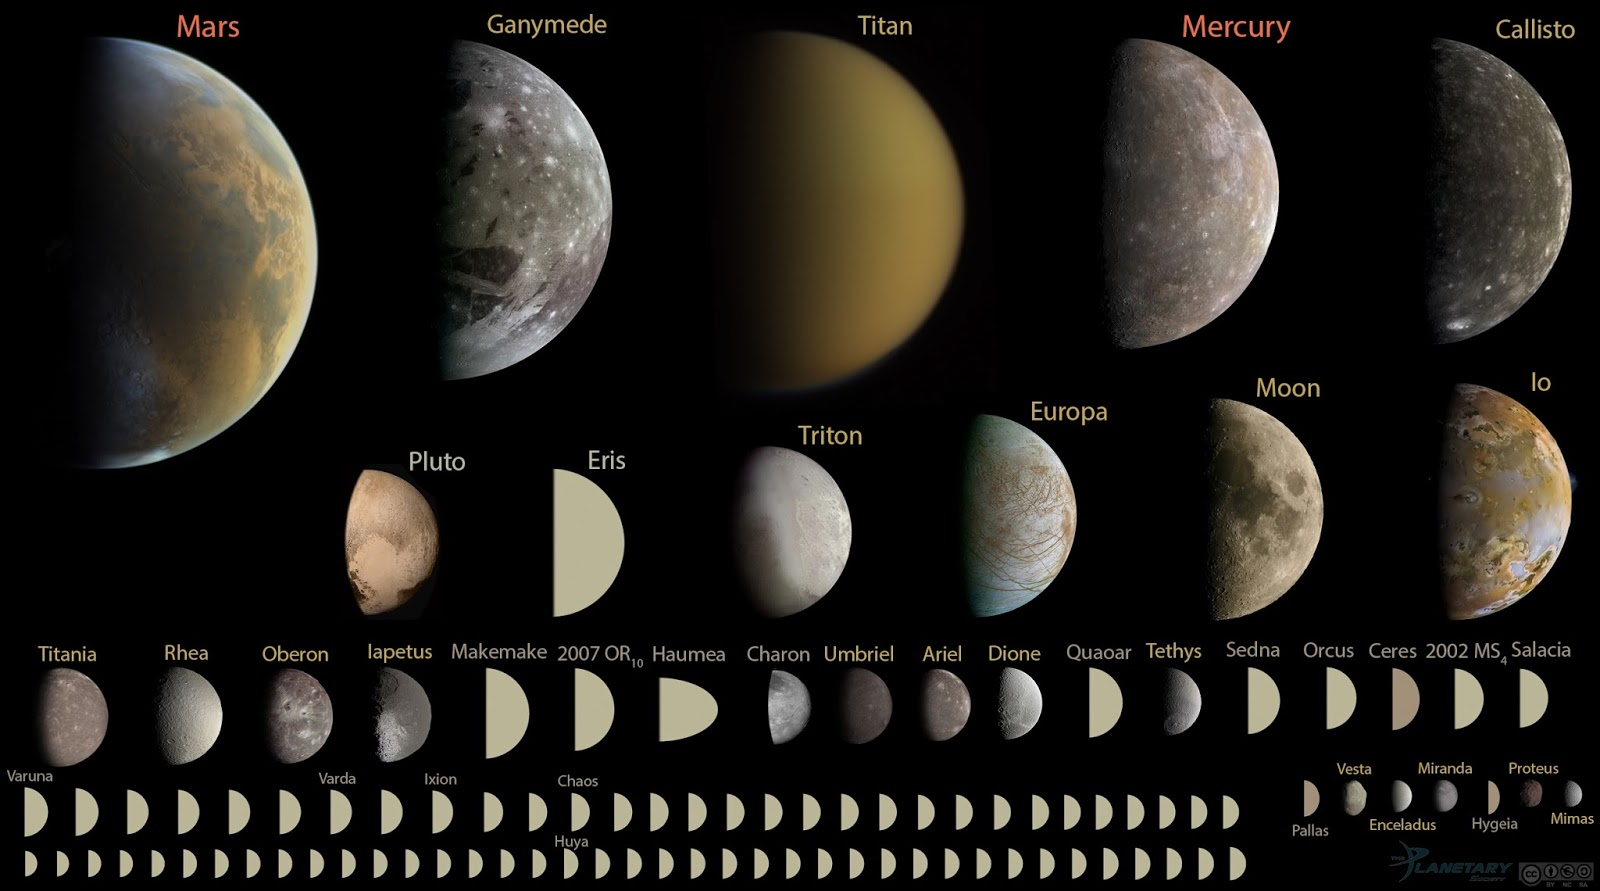 Under Runyon's geophysical definition, our solar system would be host to 110 planets.